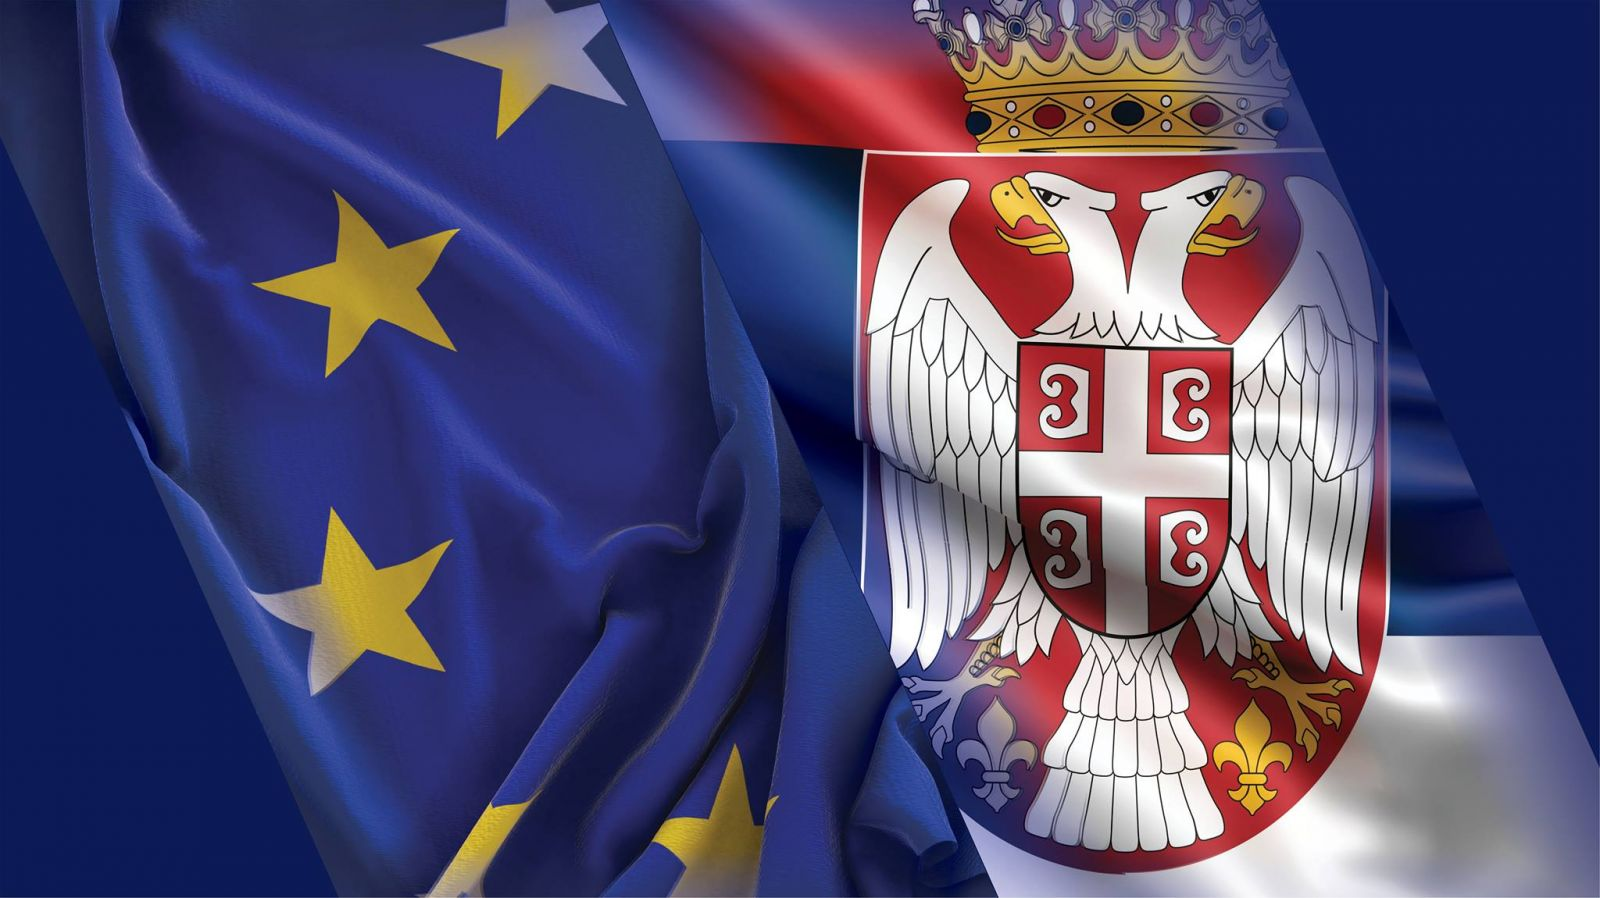 Consolidated version of the Treaty on European Union and Treaty on the Functioning of the European Union available in the Serbian language